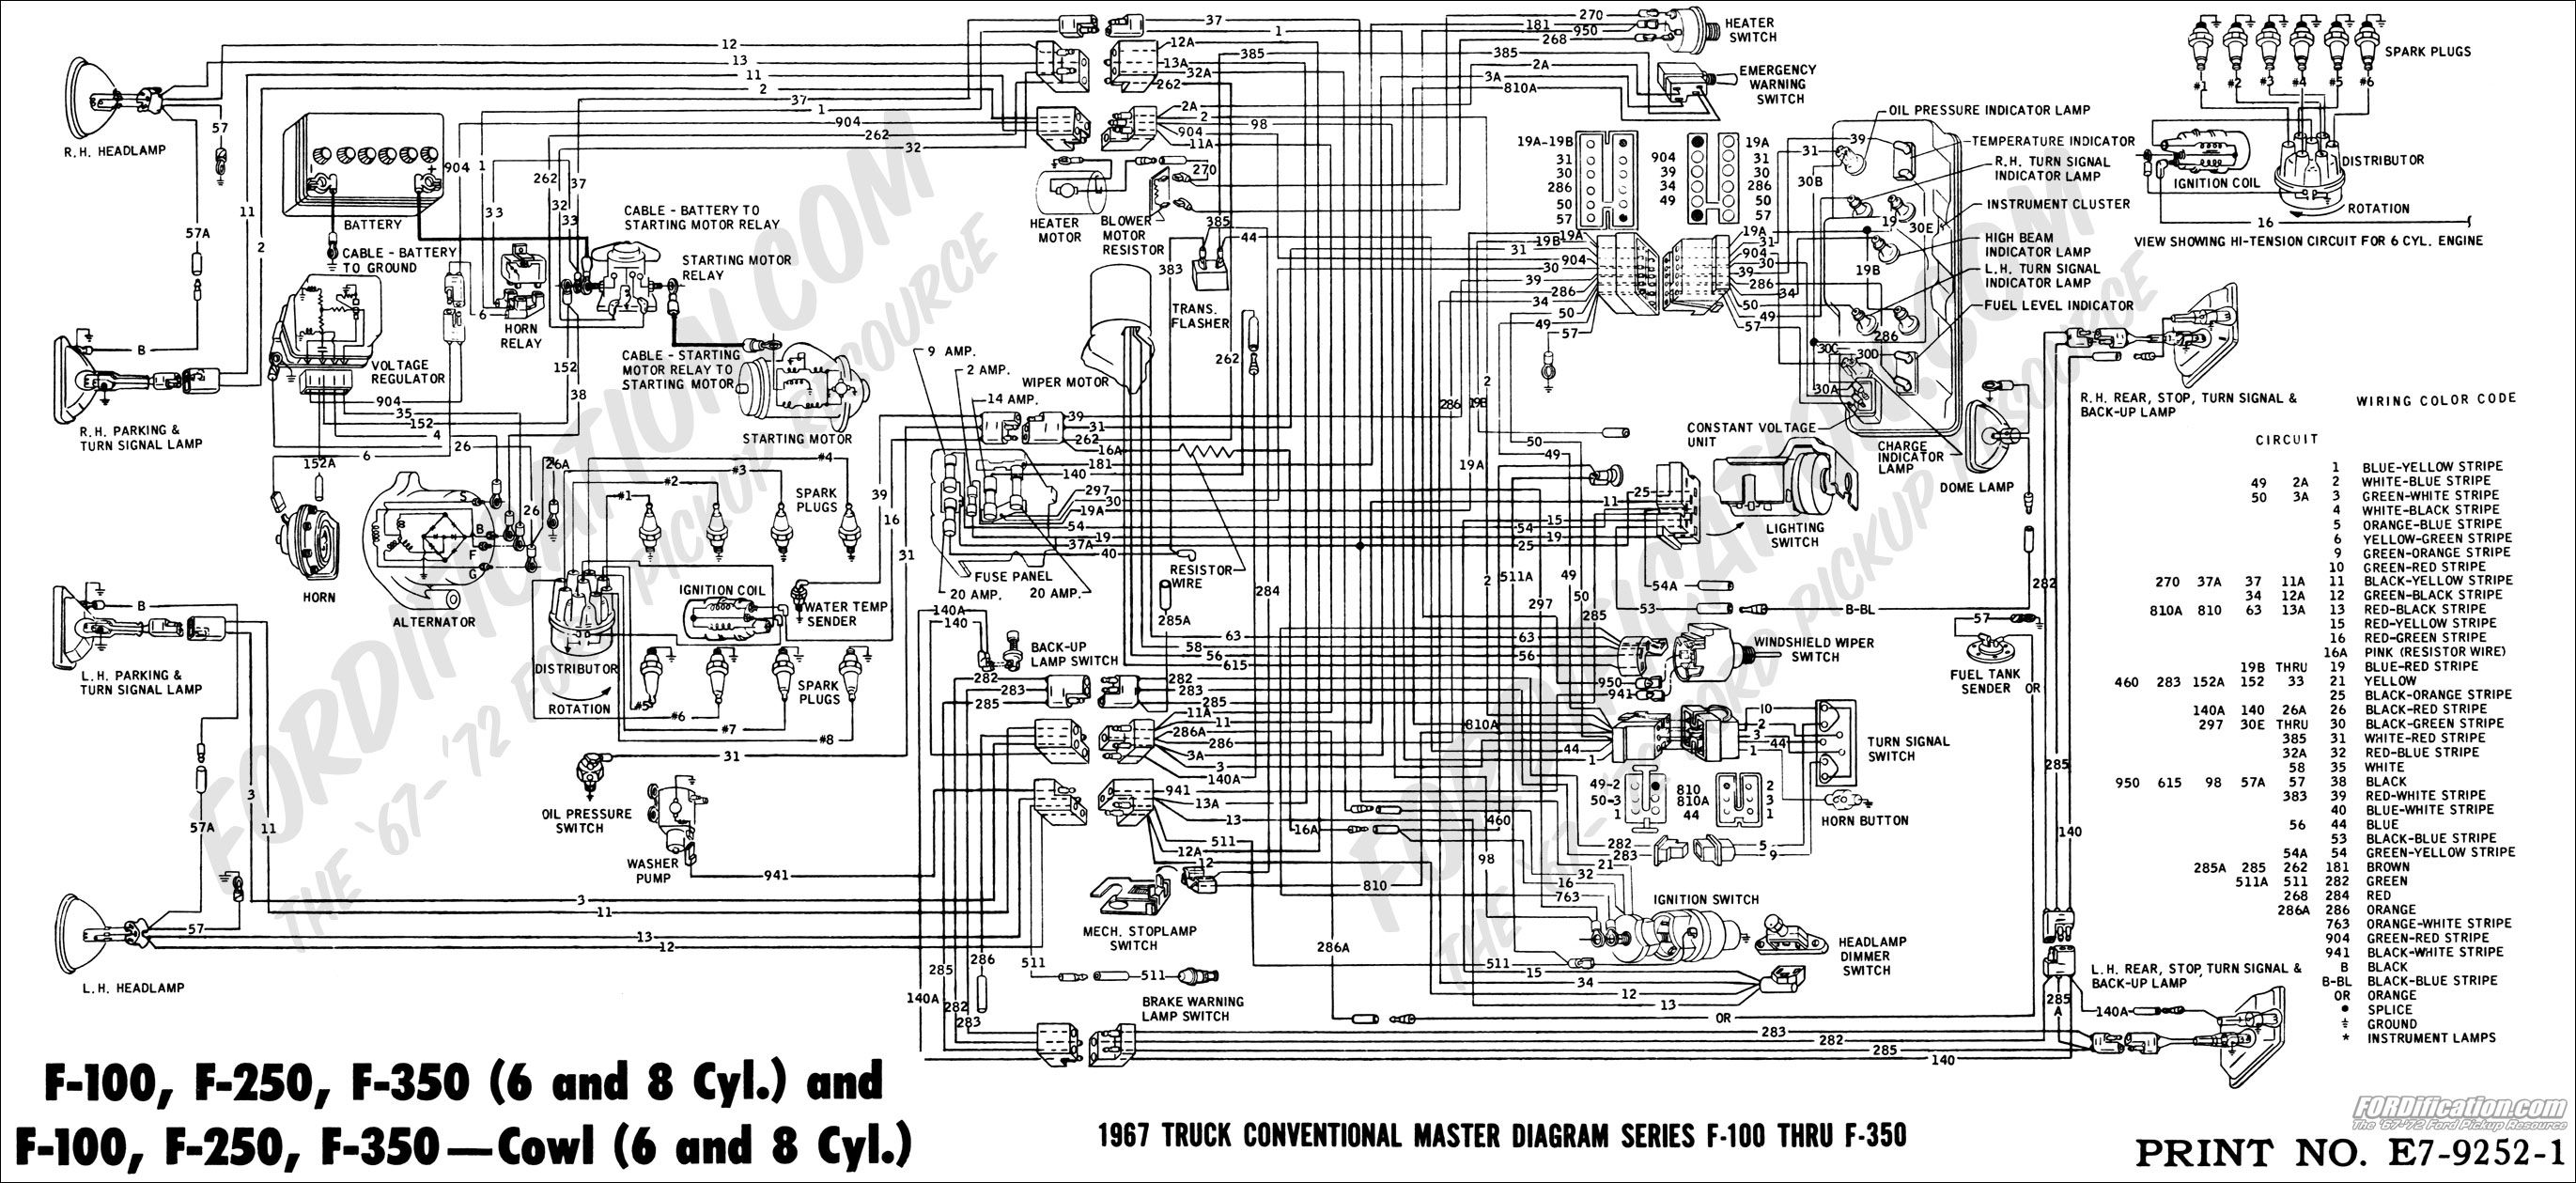 1995 F350 Light Wiring Schematic Kicker Wiring Diagram Svc Ace Wiring 2014ok Jeanjaures37 Fr